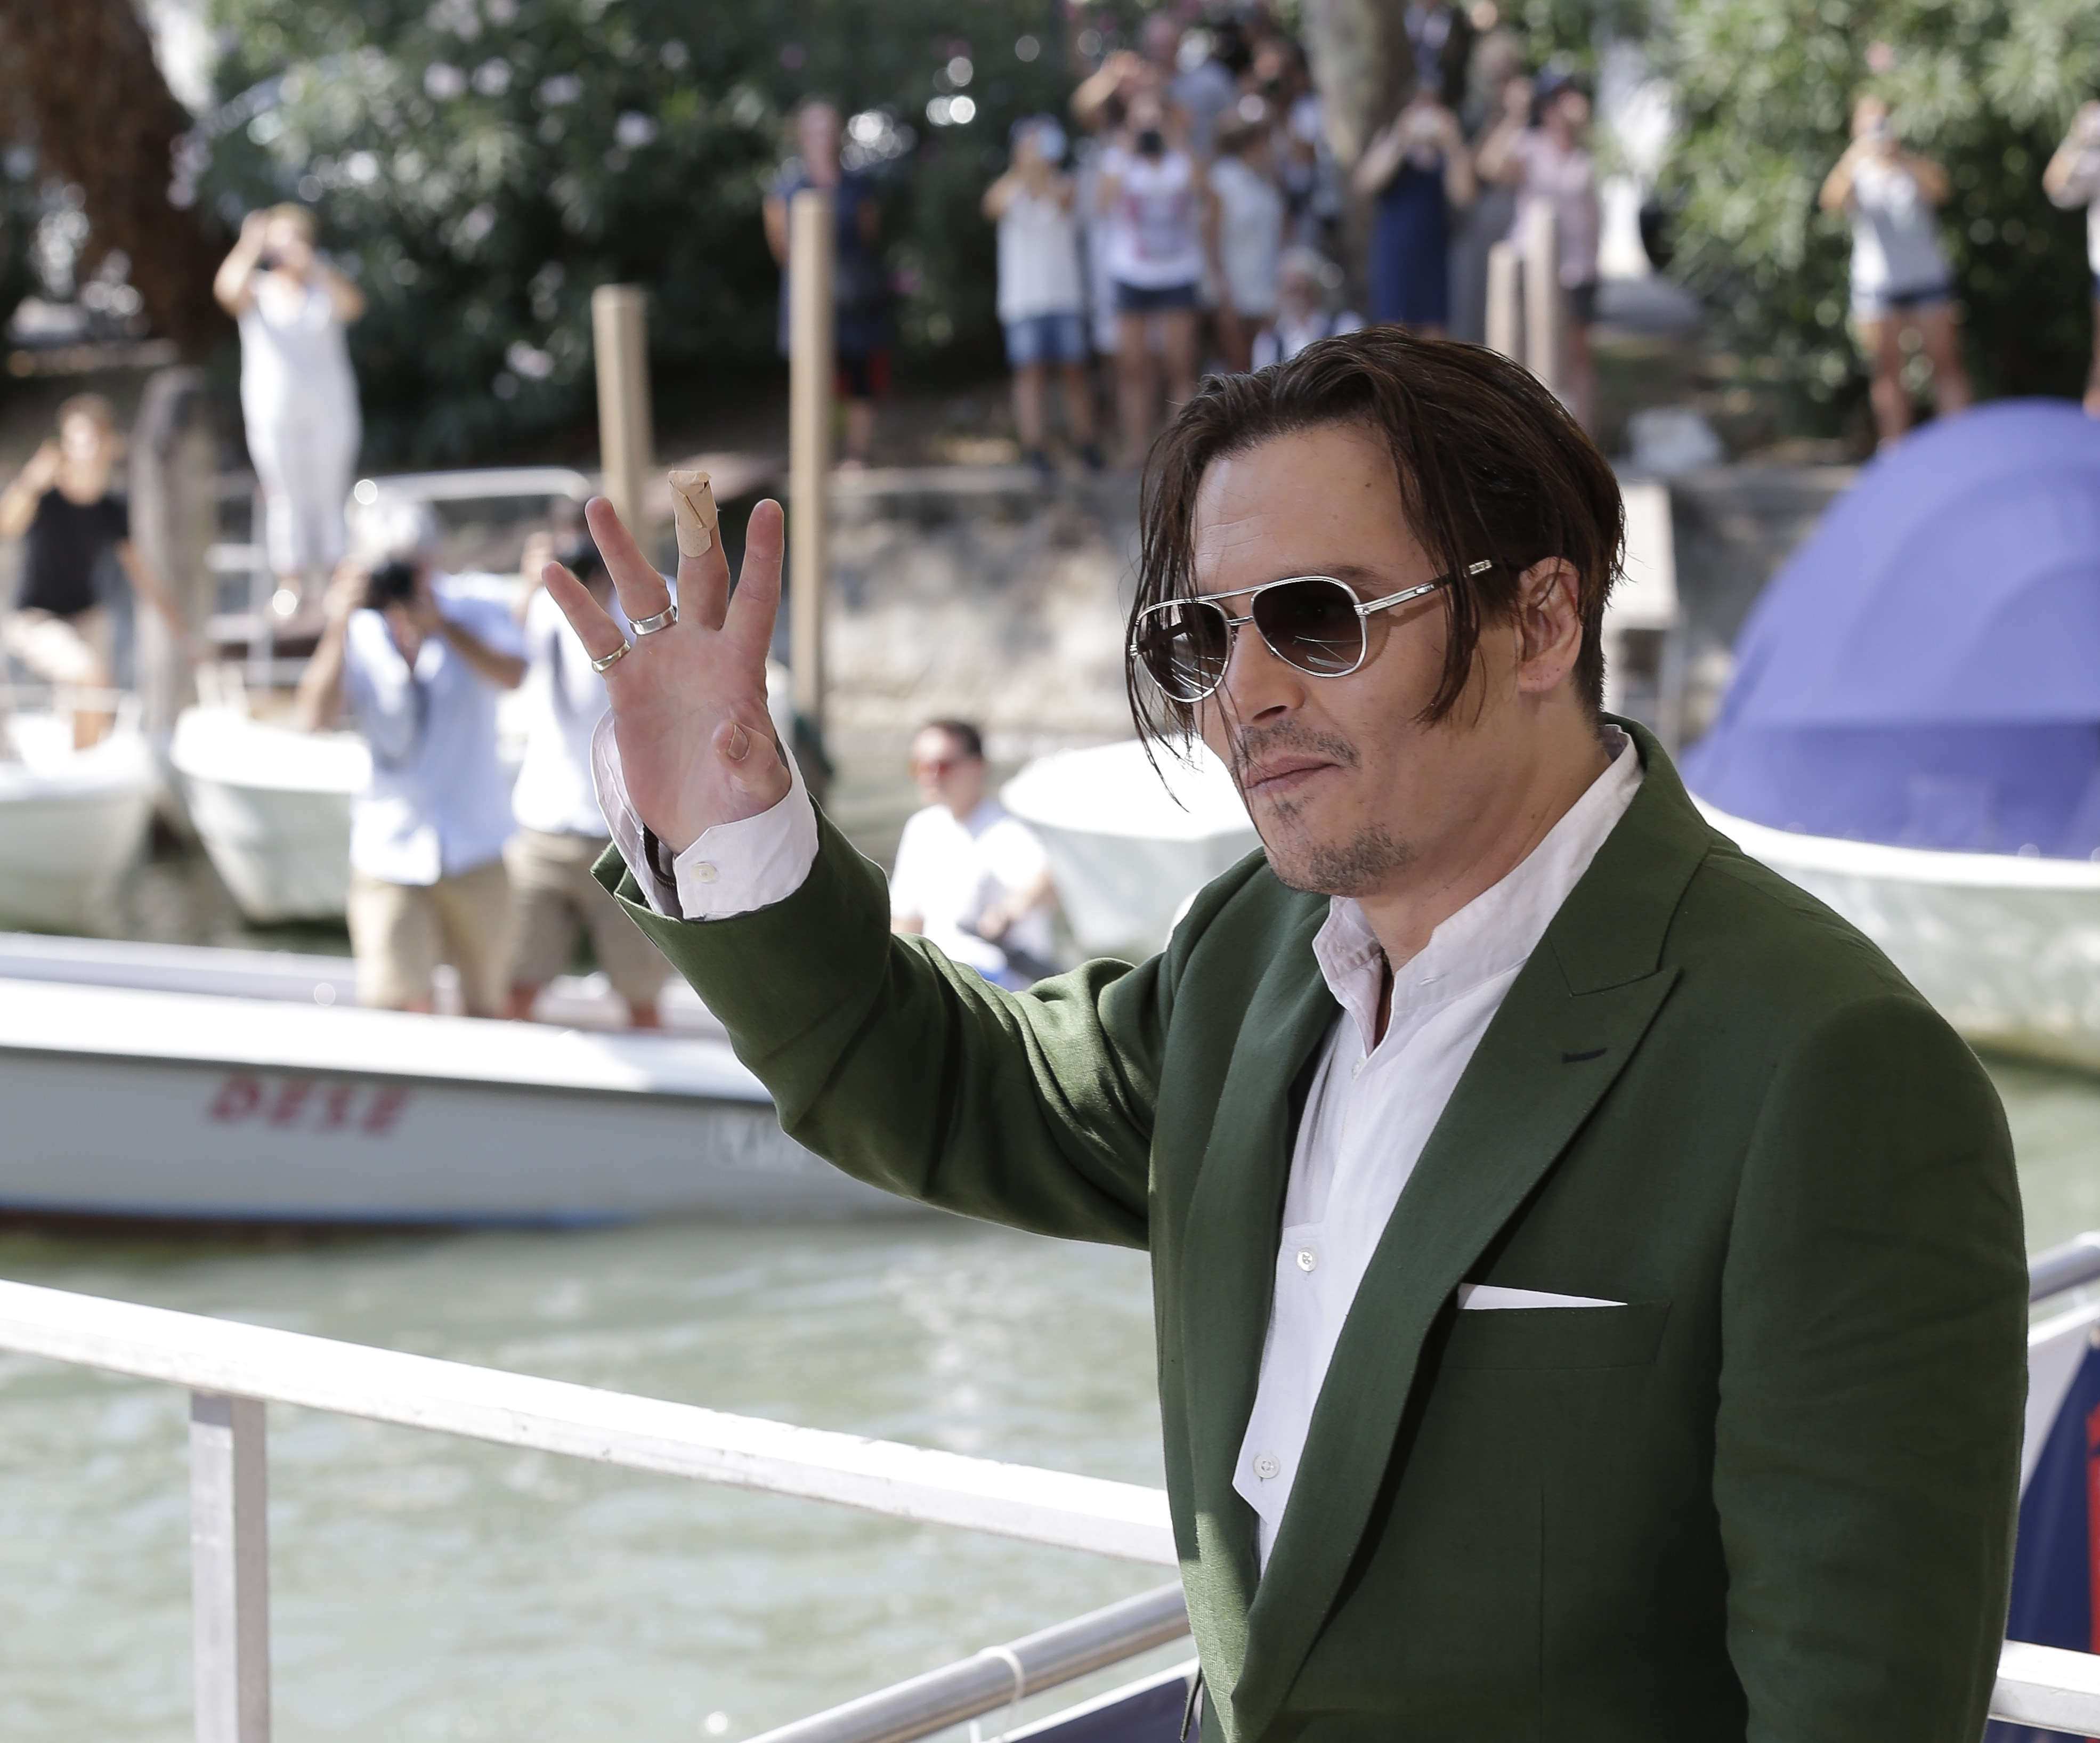 Johnny Depp - Johnny Depp - Pictures - CBS News